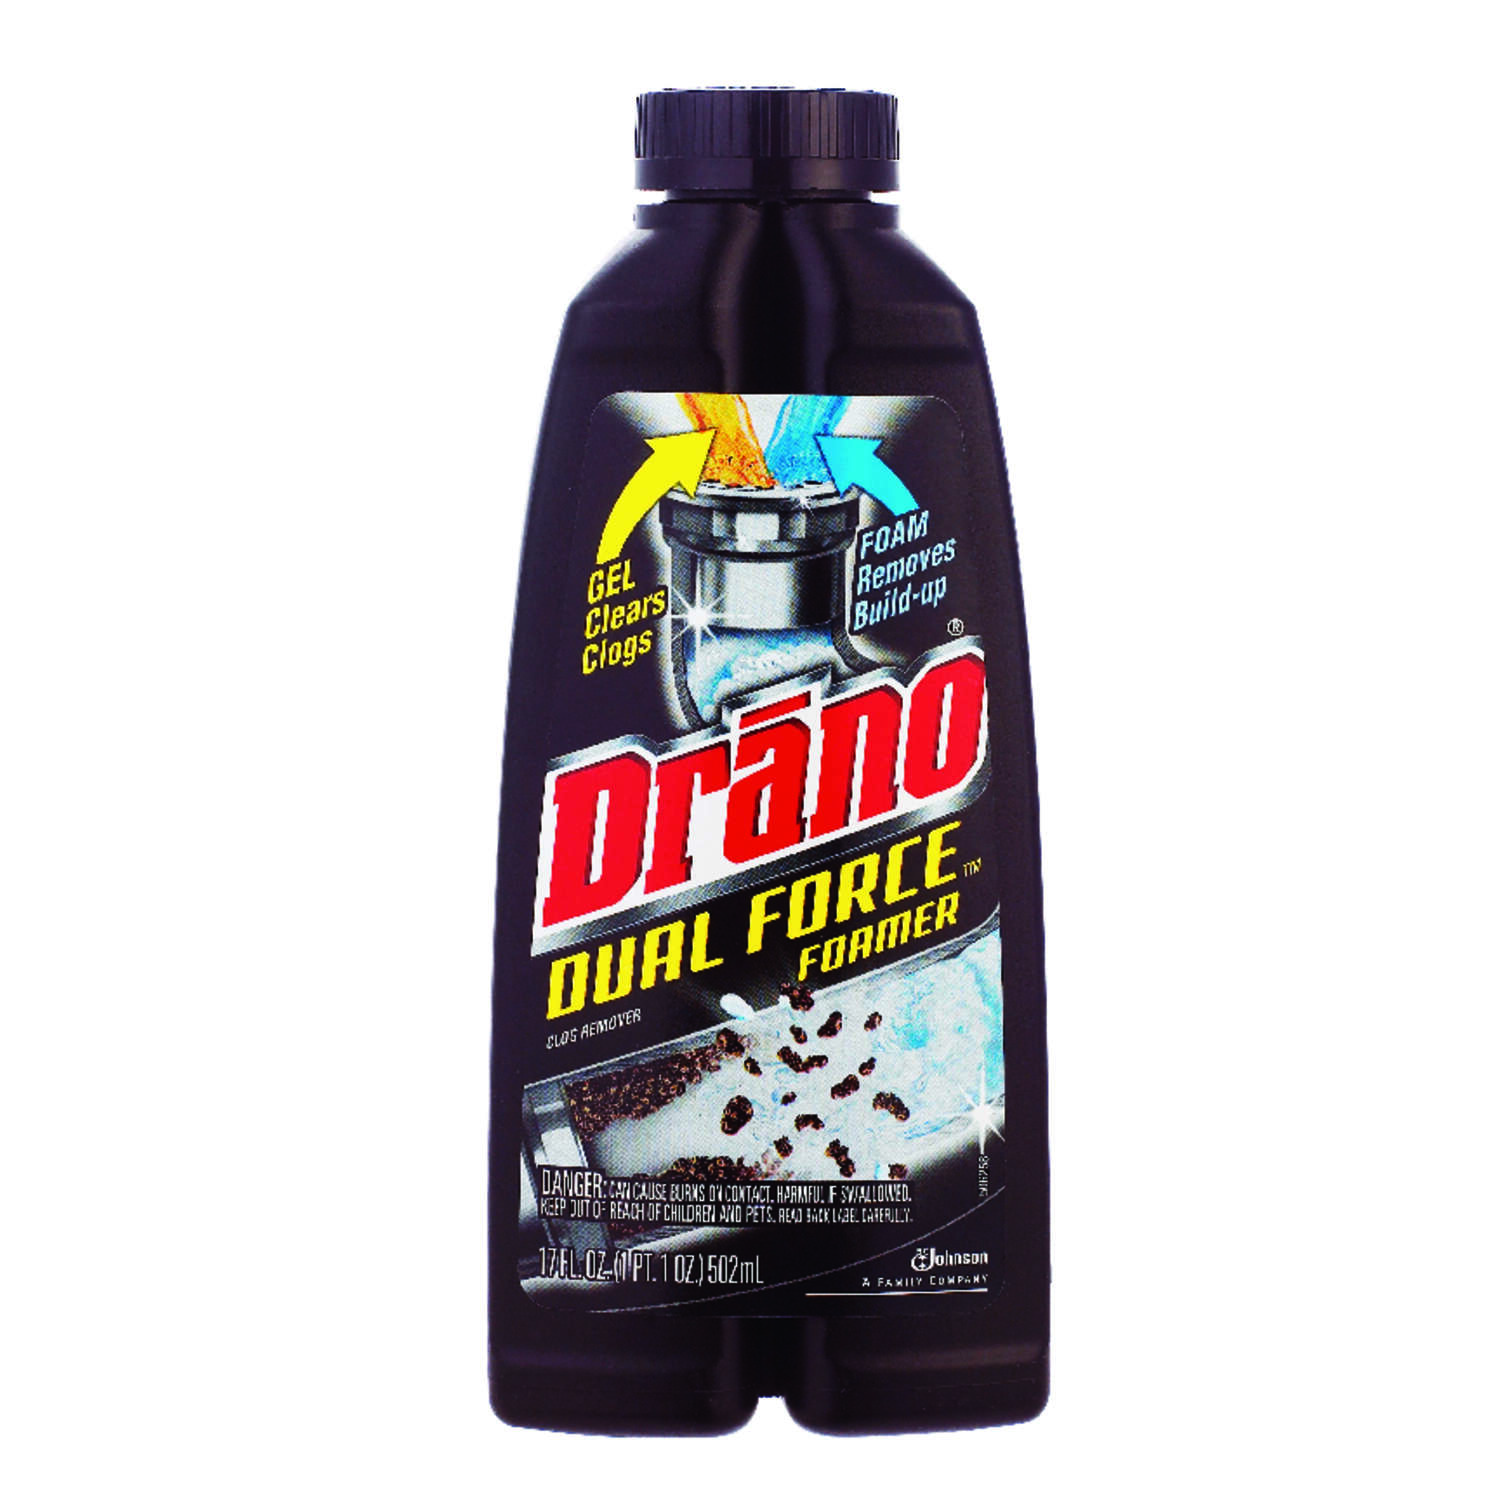 Drano  Dual Force  Liquid  Clog Remover  17 oz.